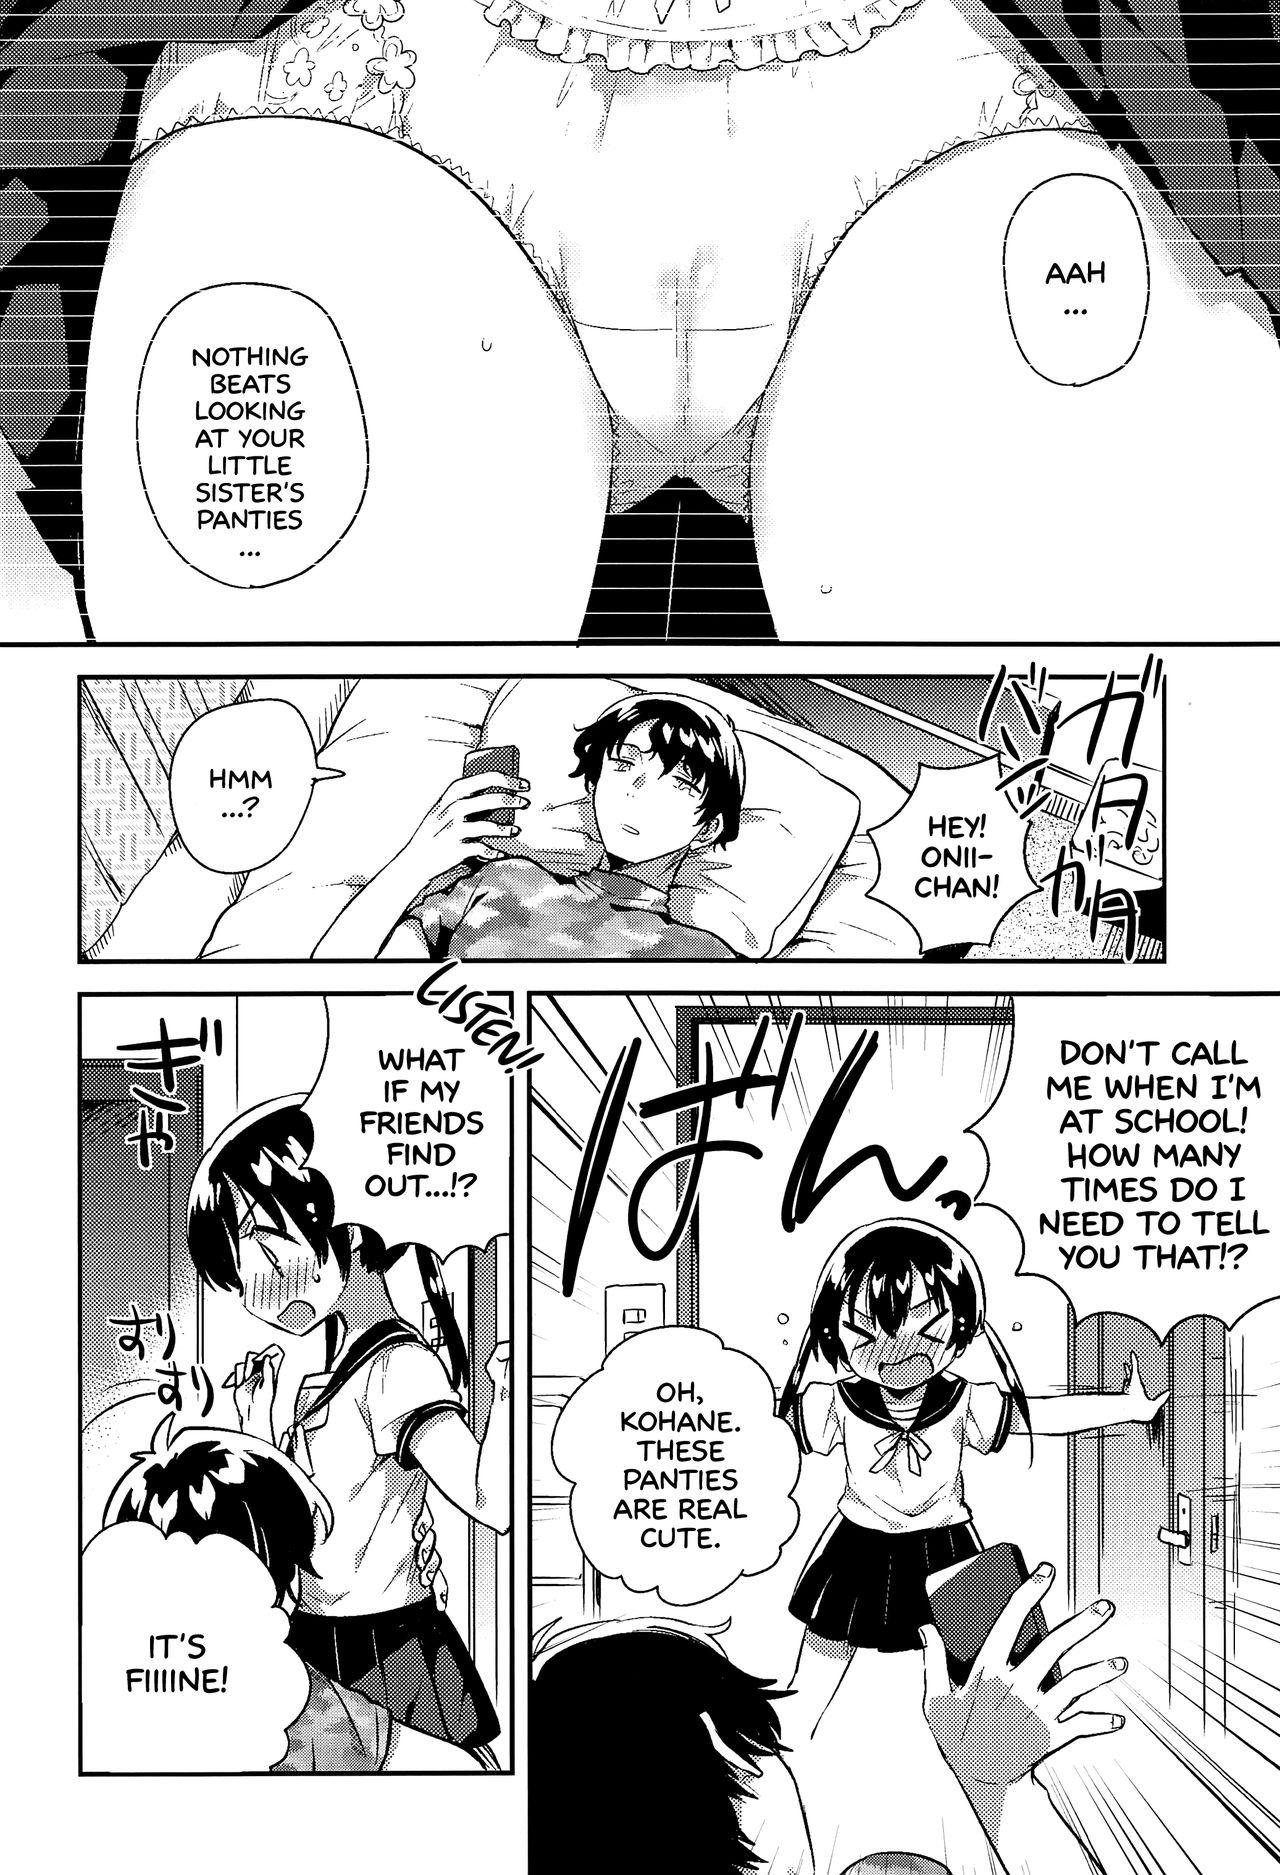 Imouto to Sex Suru nante Kimochi Warui | Having Sex With Your Little Sister? That's Gross! 4